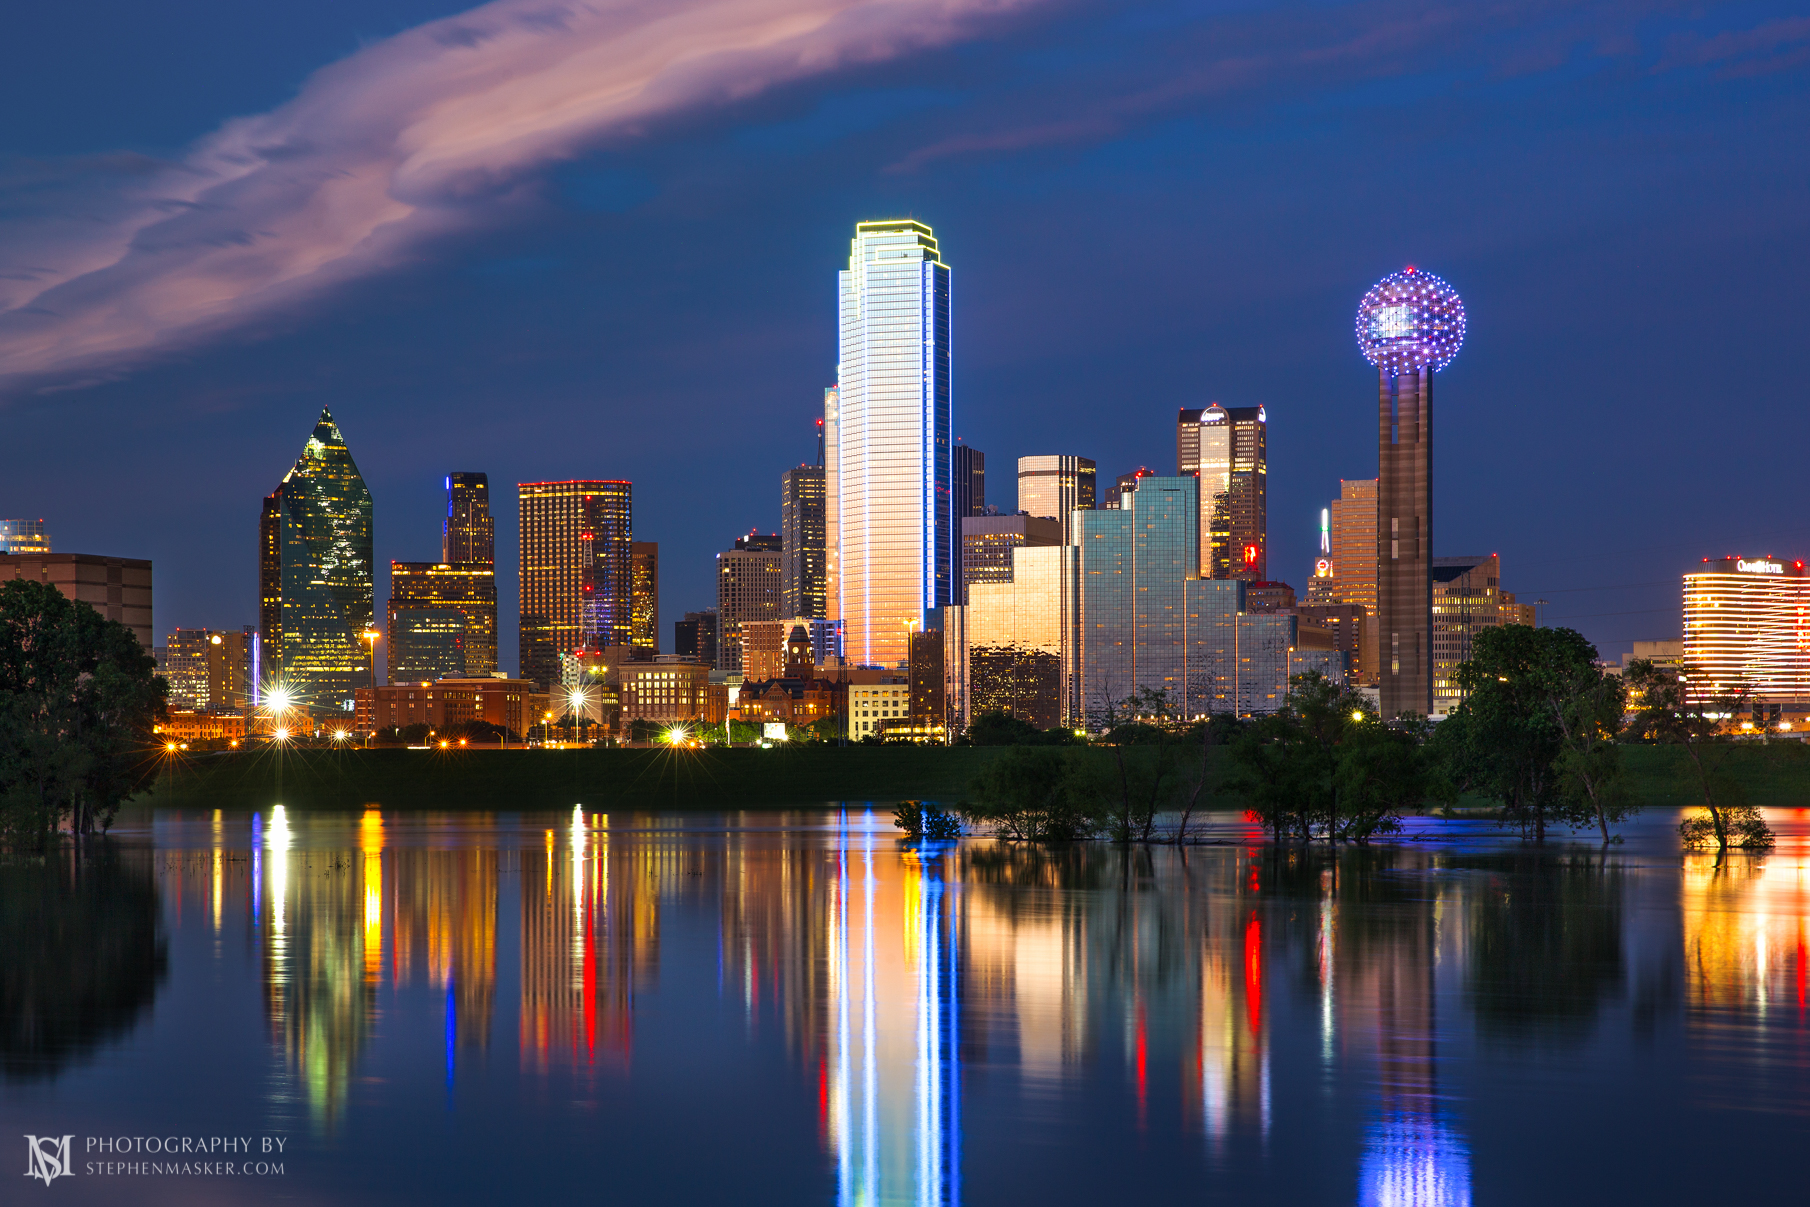 Dallas Skyline at Dusk with Reflection